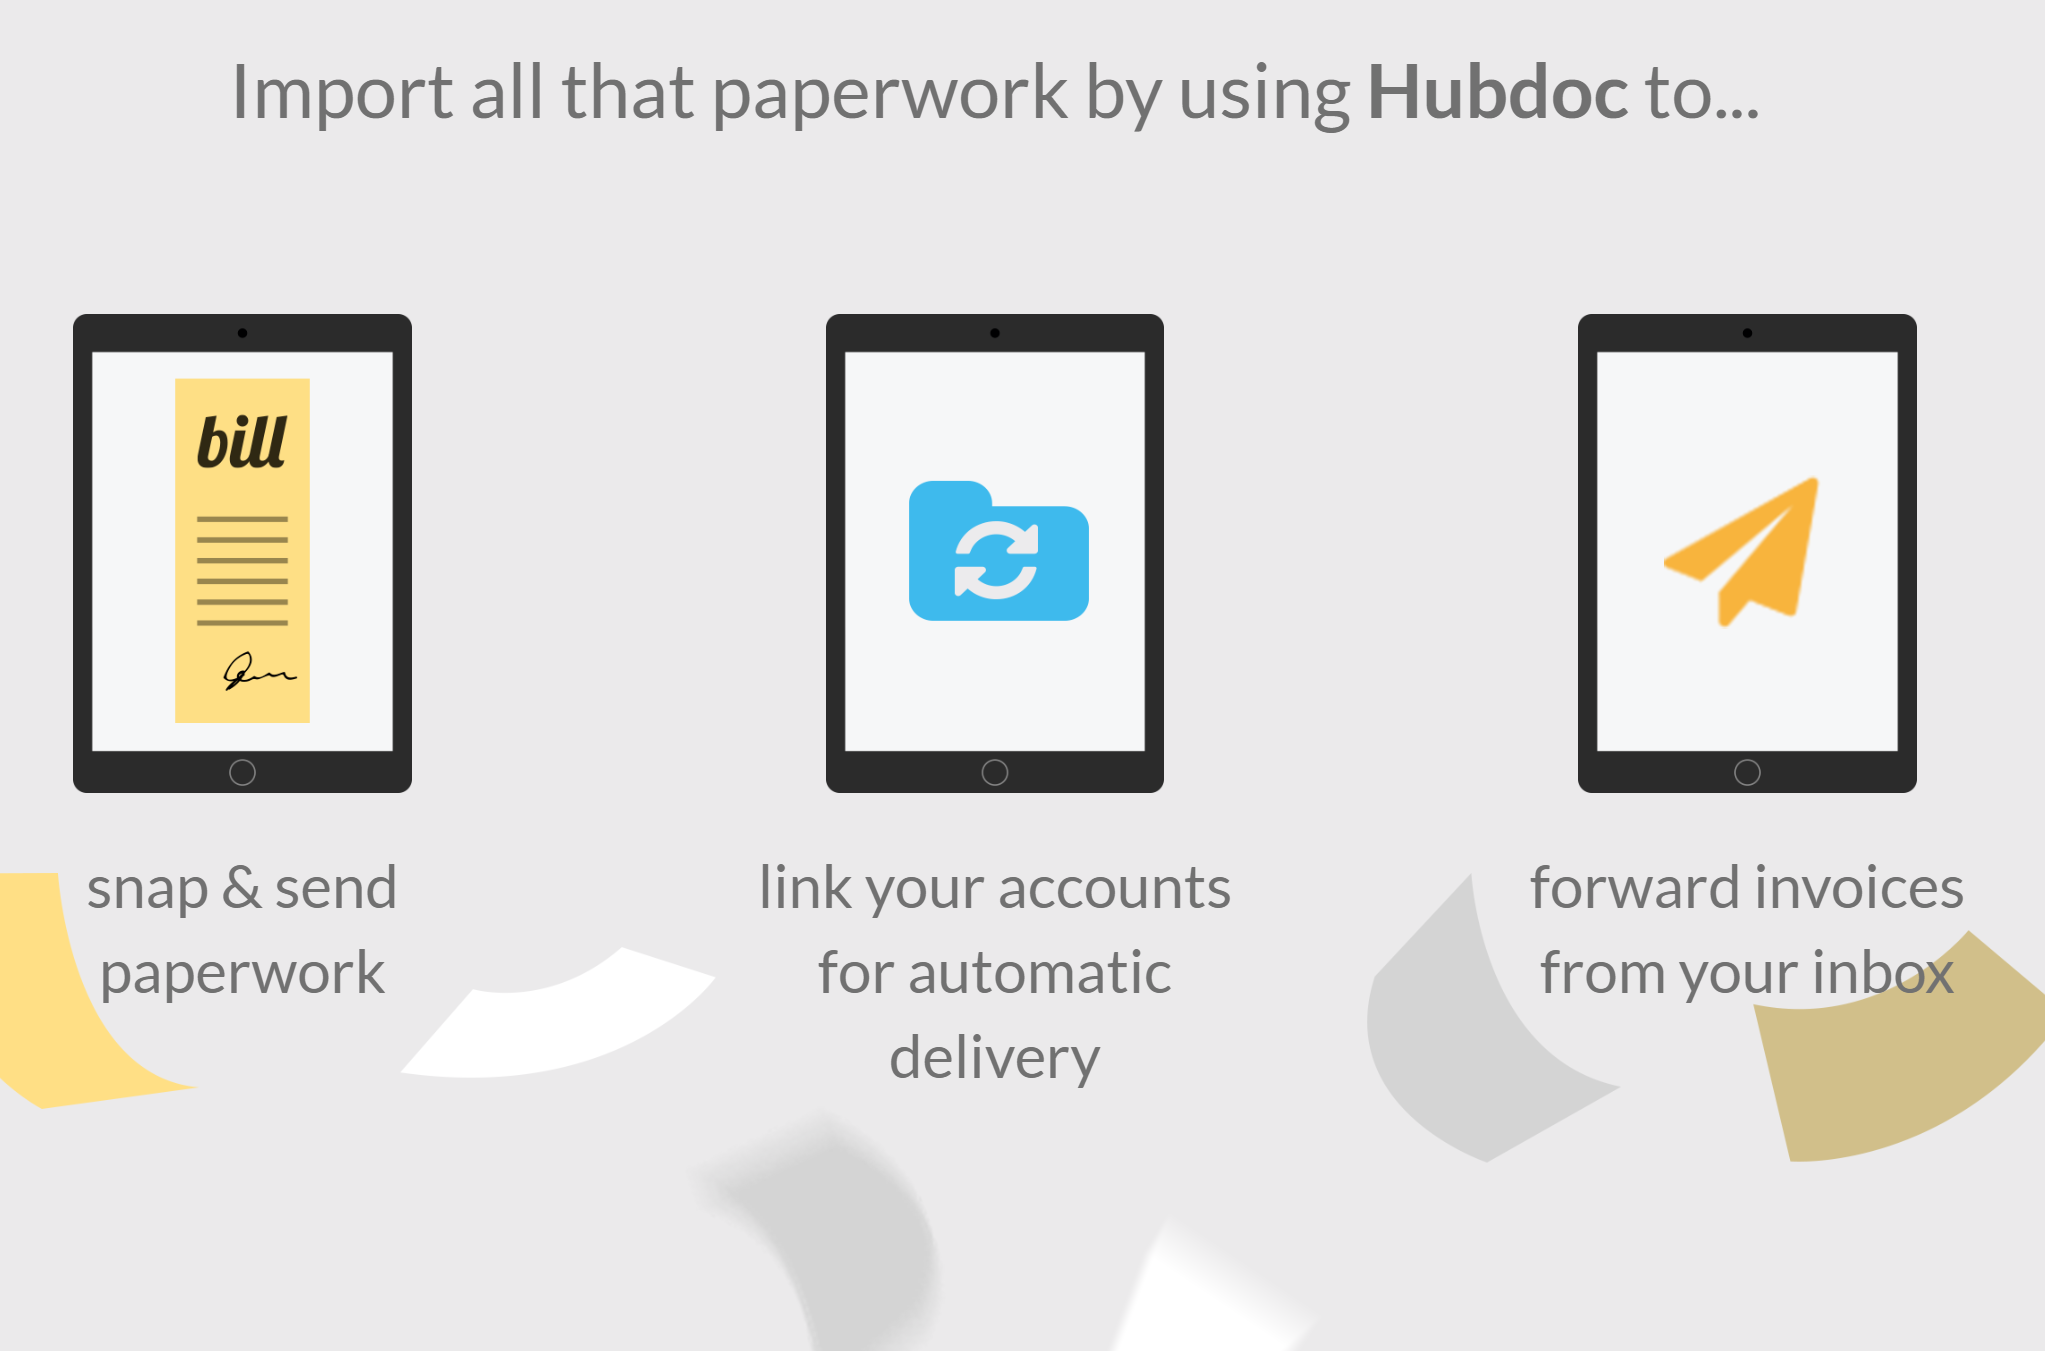 hubdoc - Hubdoc extracts key information from your receipts, invoices, and bills. No more data entry, no more filing. Publish your docs and their data directly to accounting software like Xero, QuickBooks Online and Bill.com. Quickly search through all of your documents and find matching keywords or phrases, accountants and co-workers.